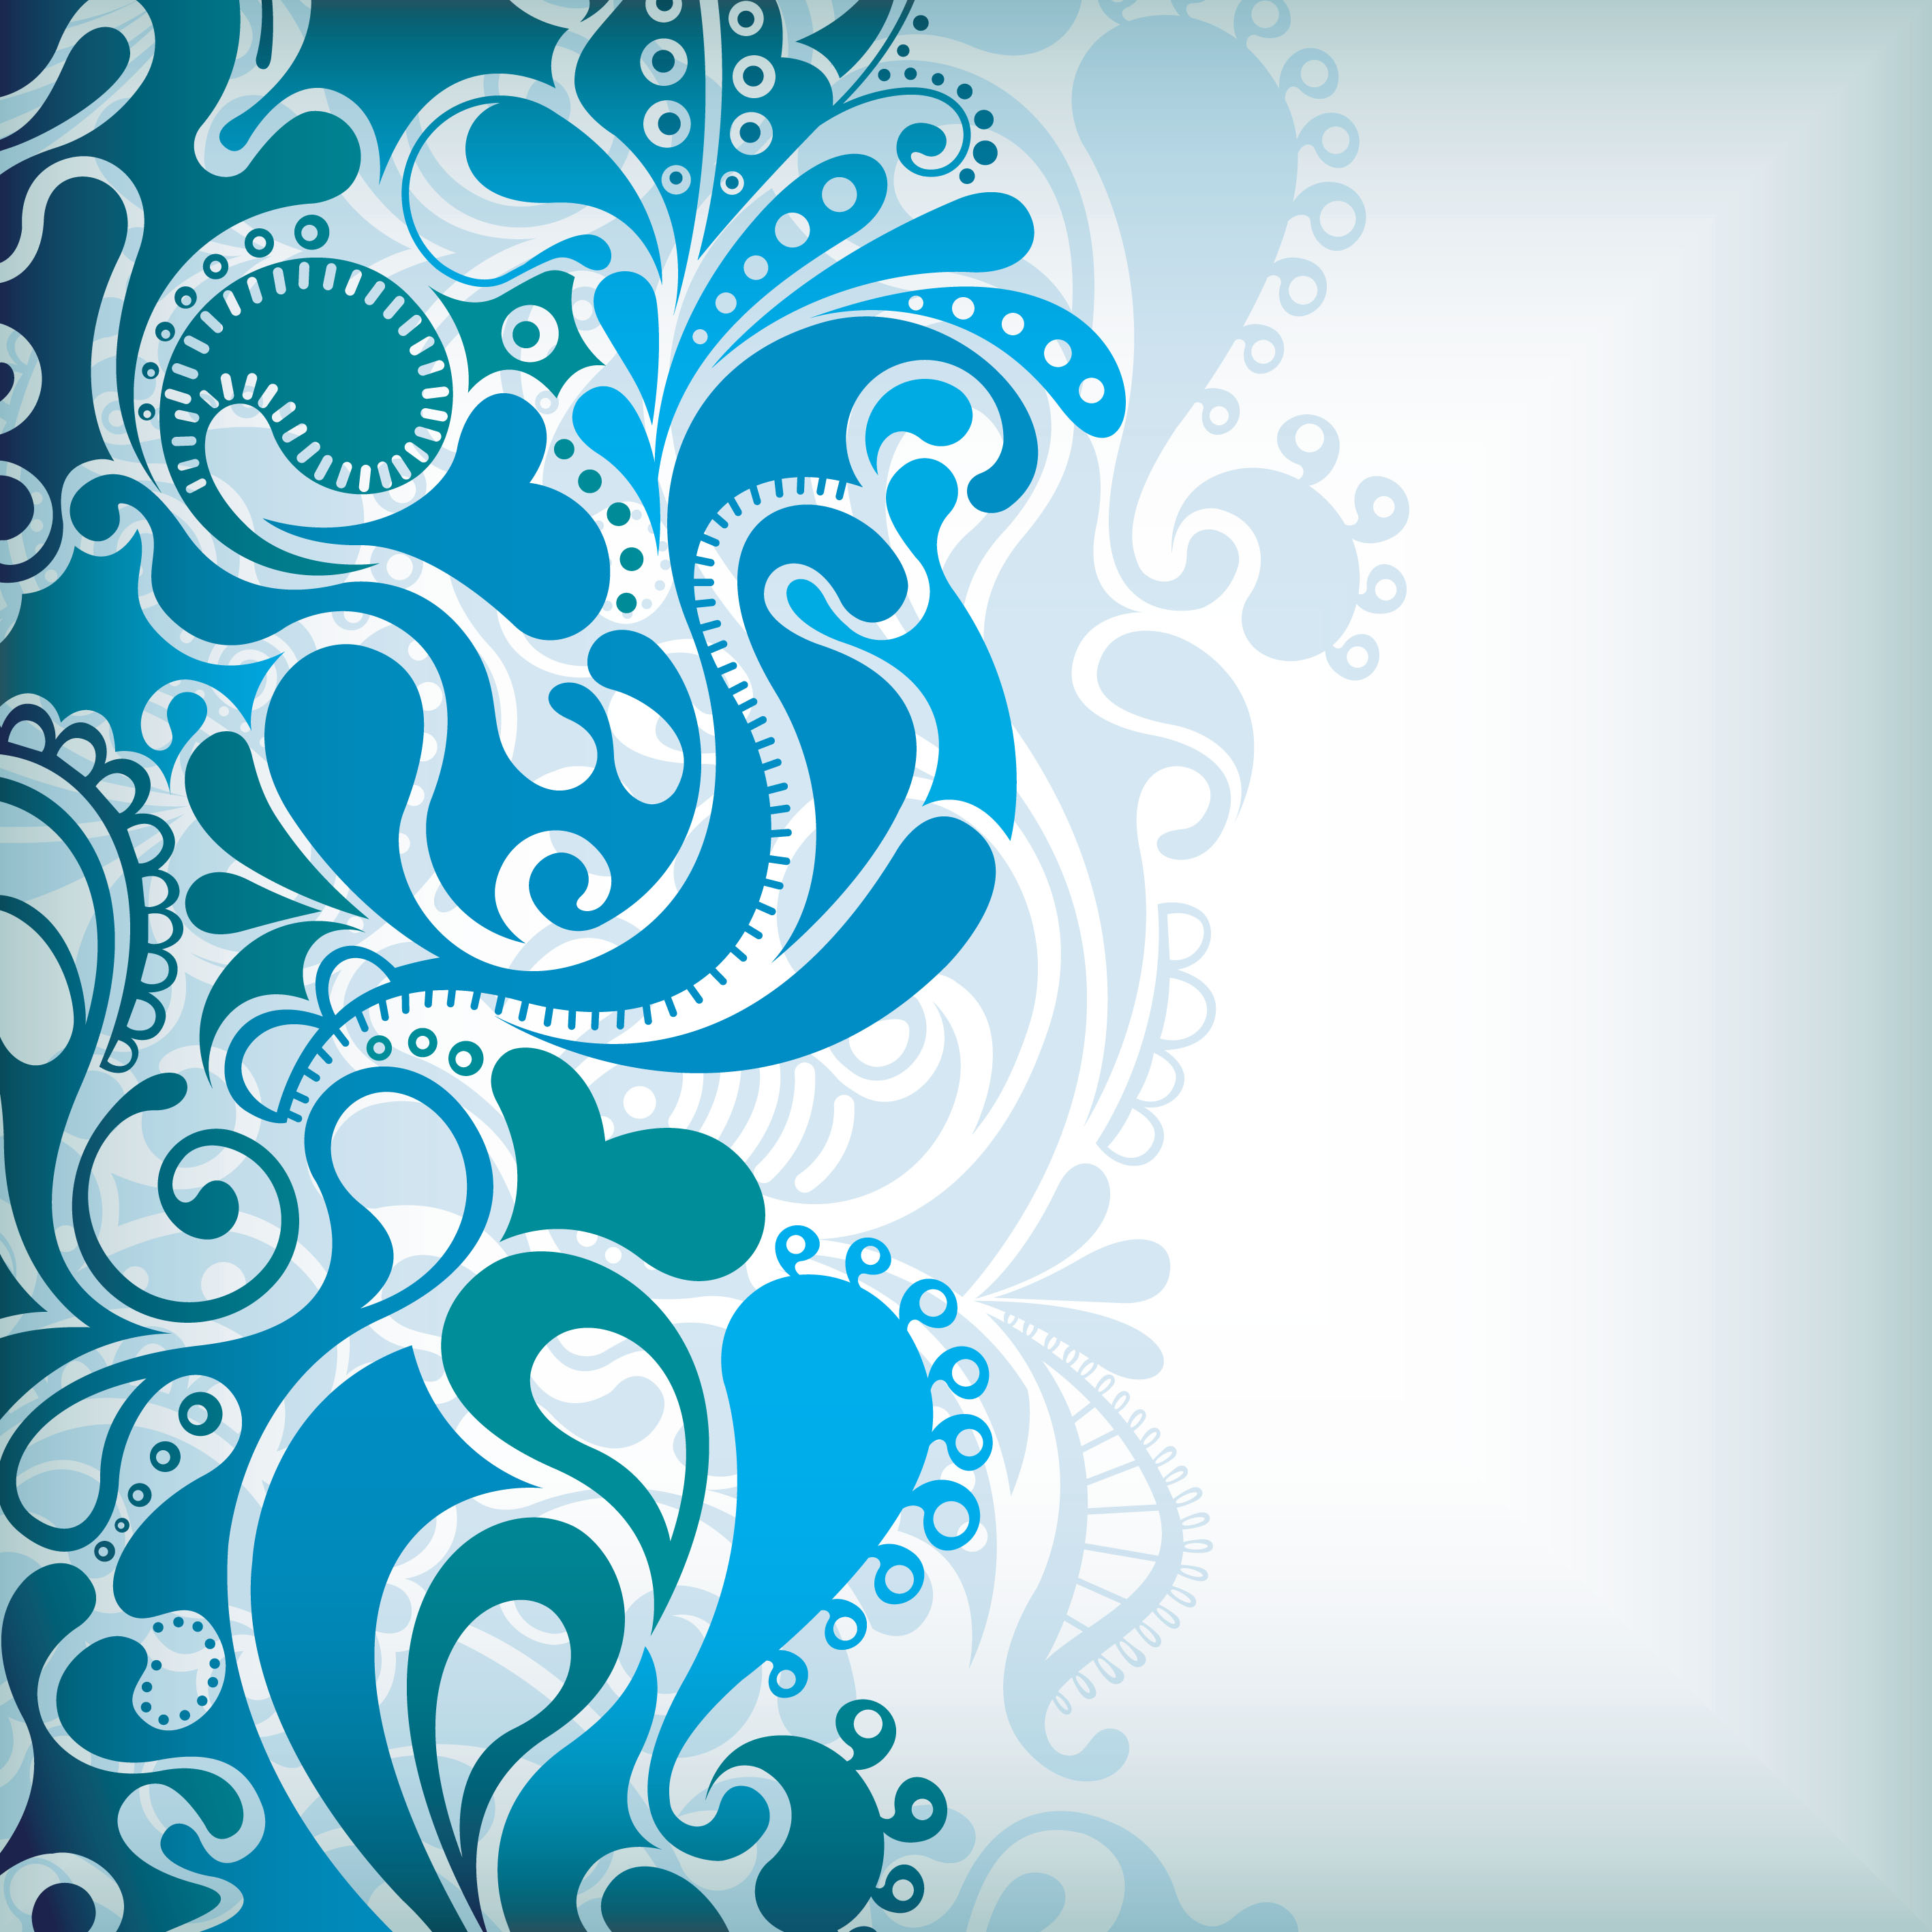 2835x2835 Vector Background 675 Verdewall